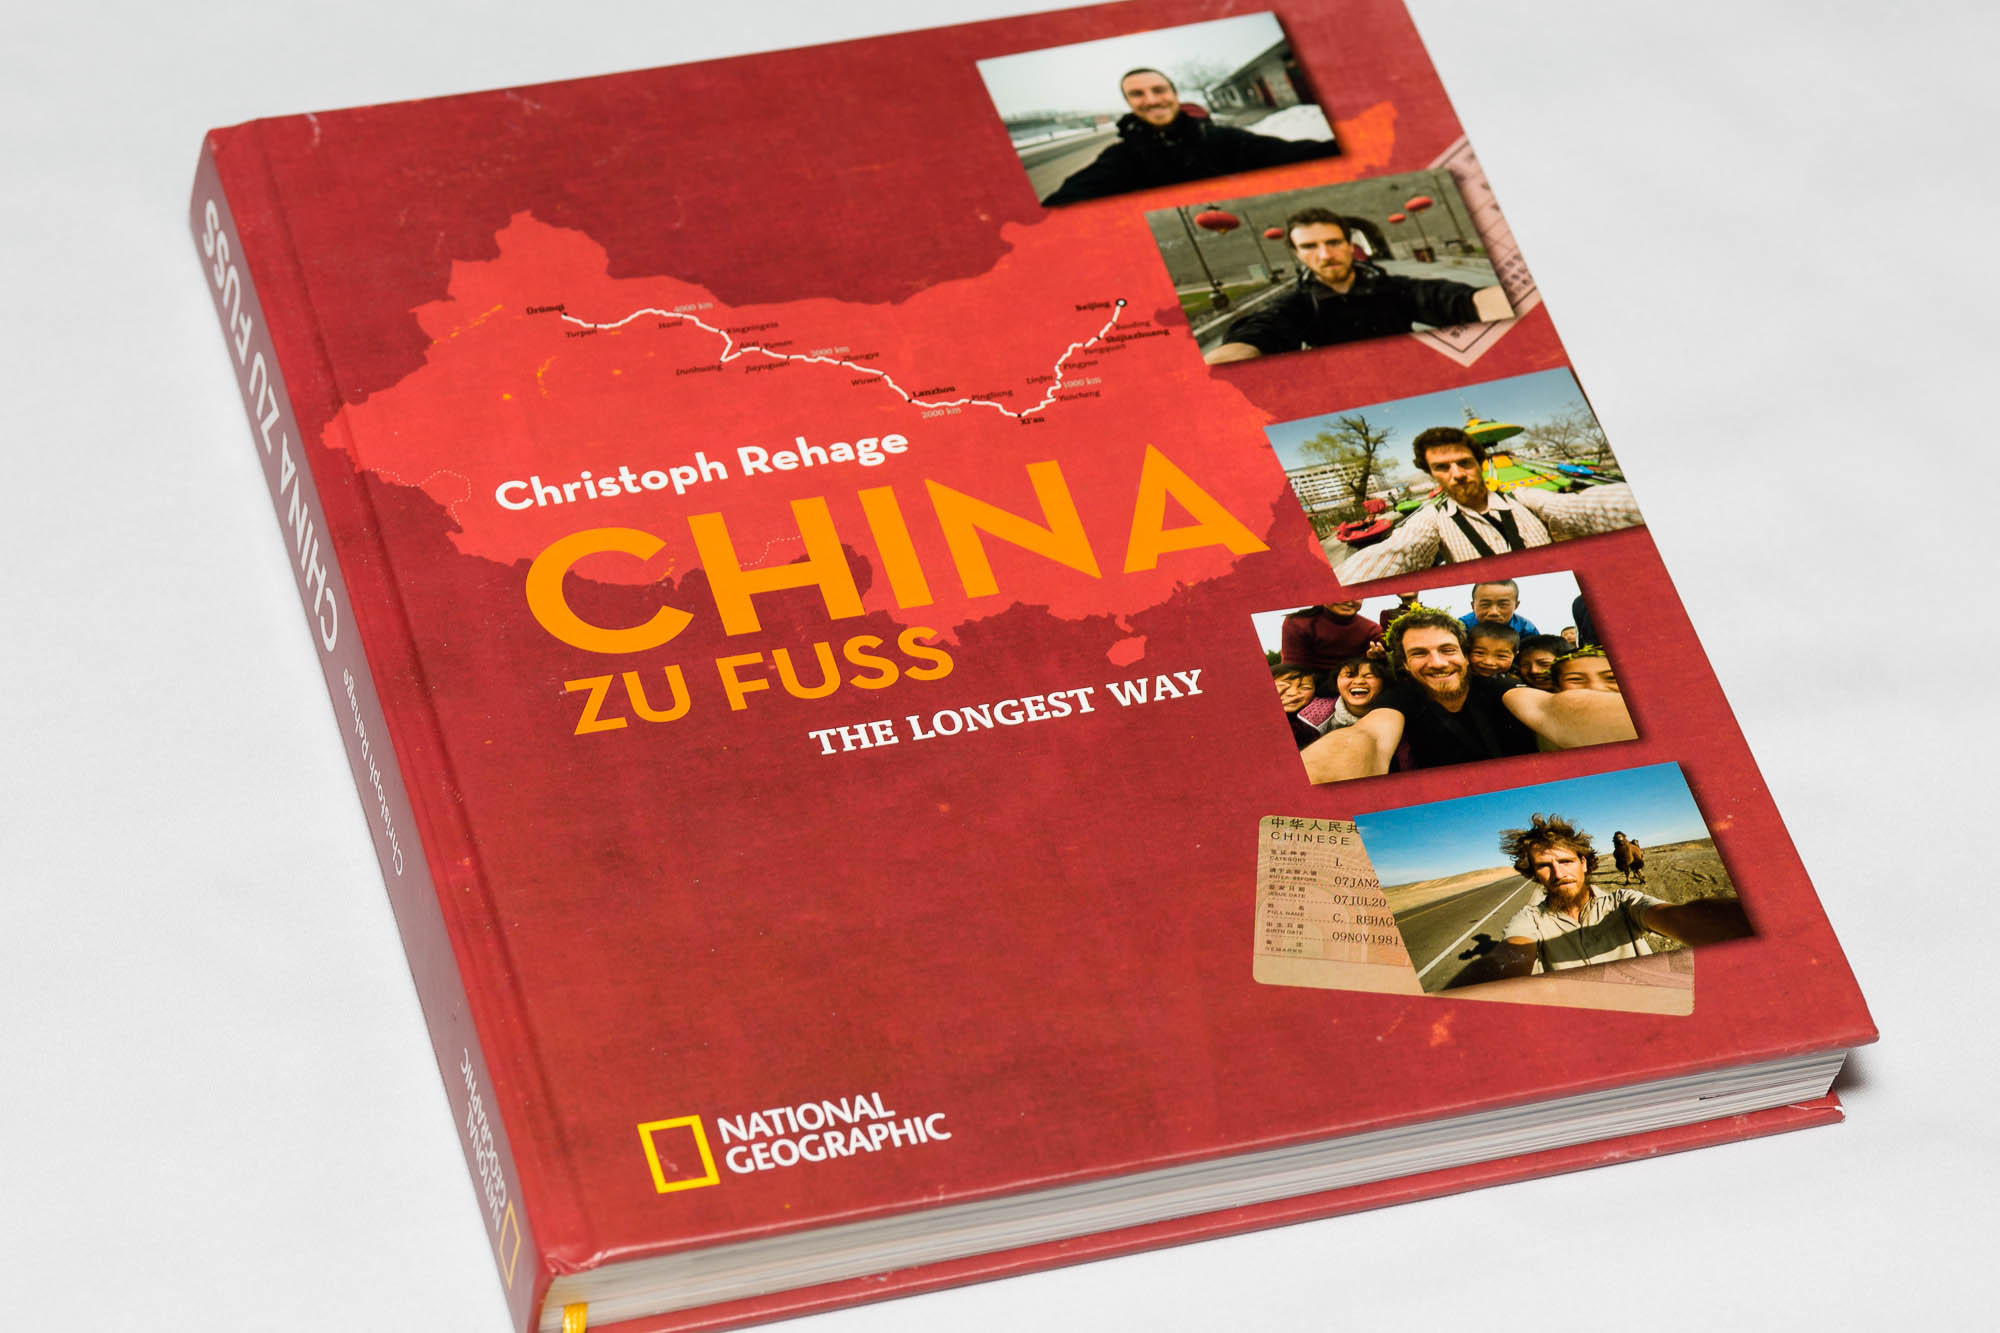 China zu Fuß book